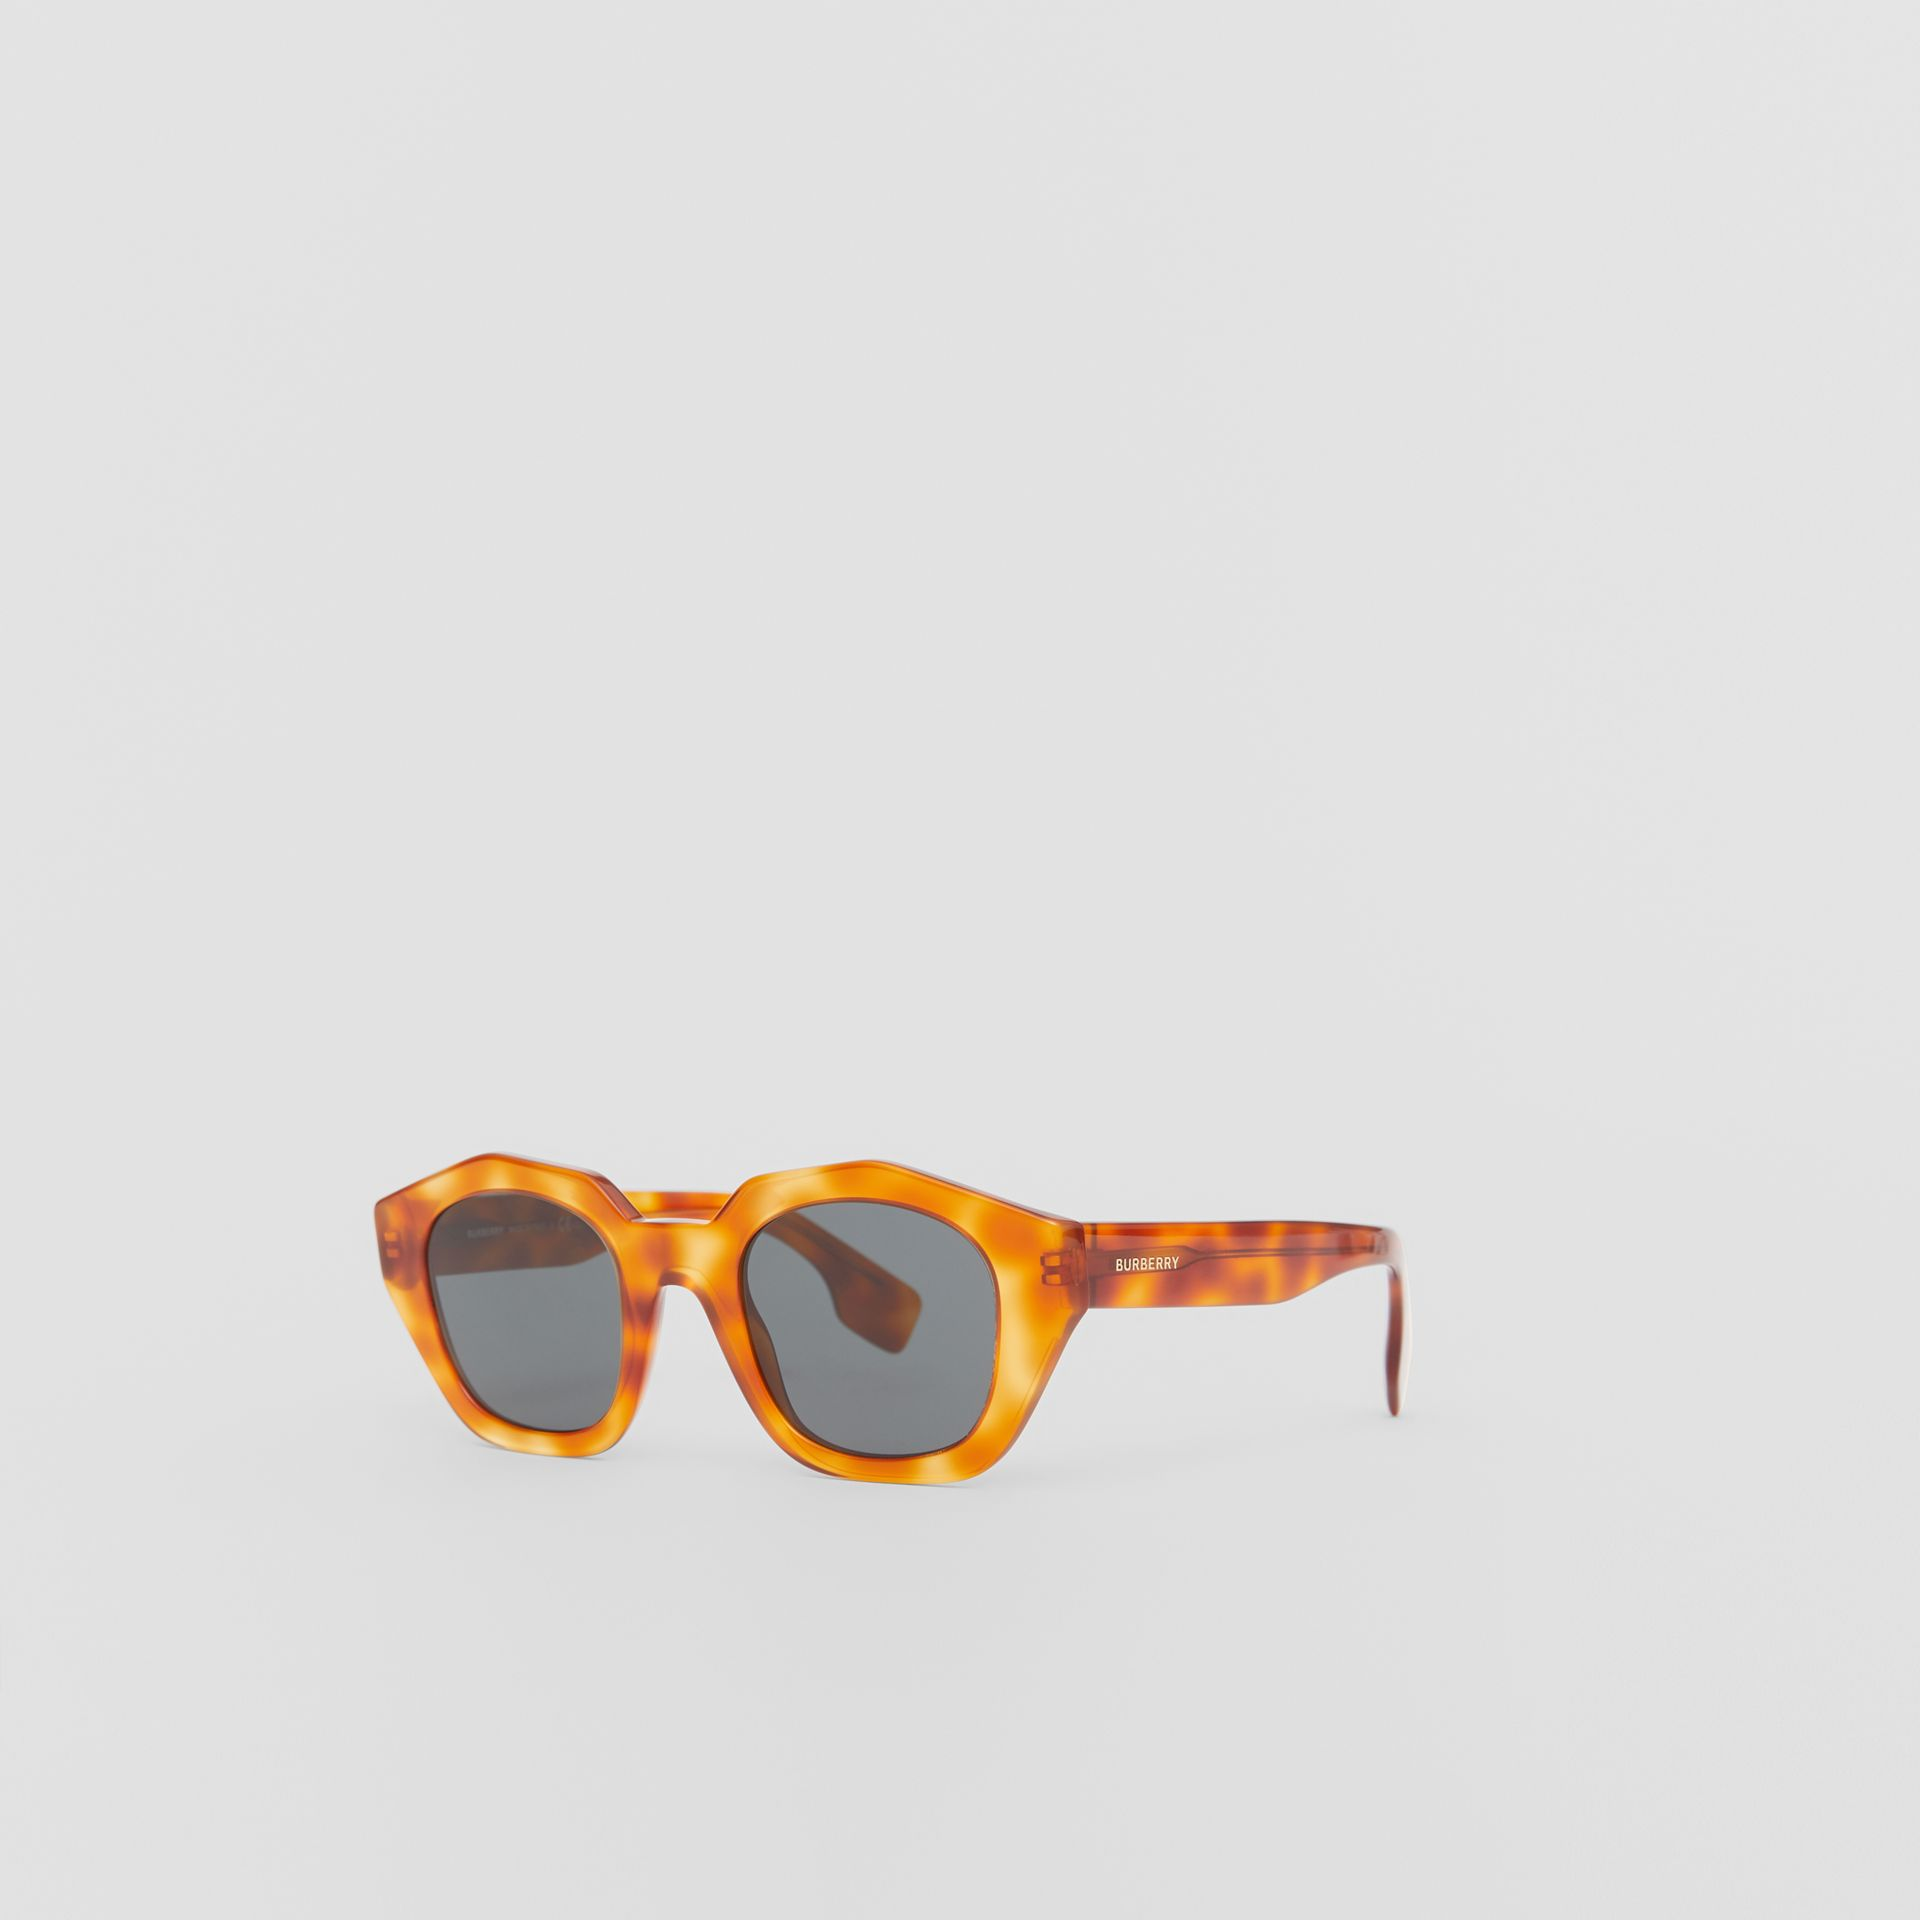 Geometric Frame Sunglasses in Tortoiseshell Amber - Women | Burberry - gallery image 5